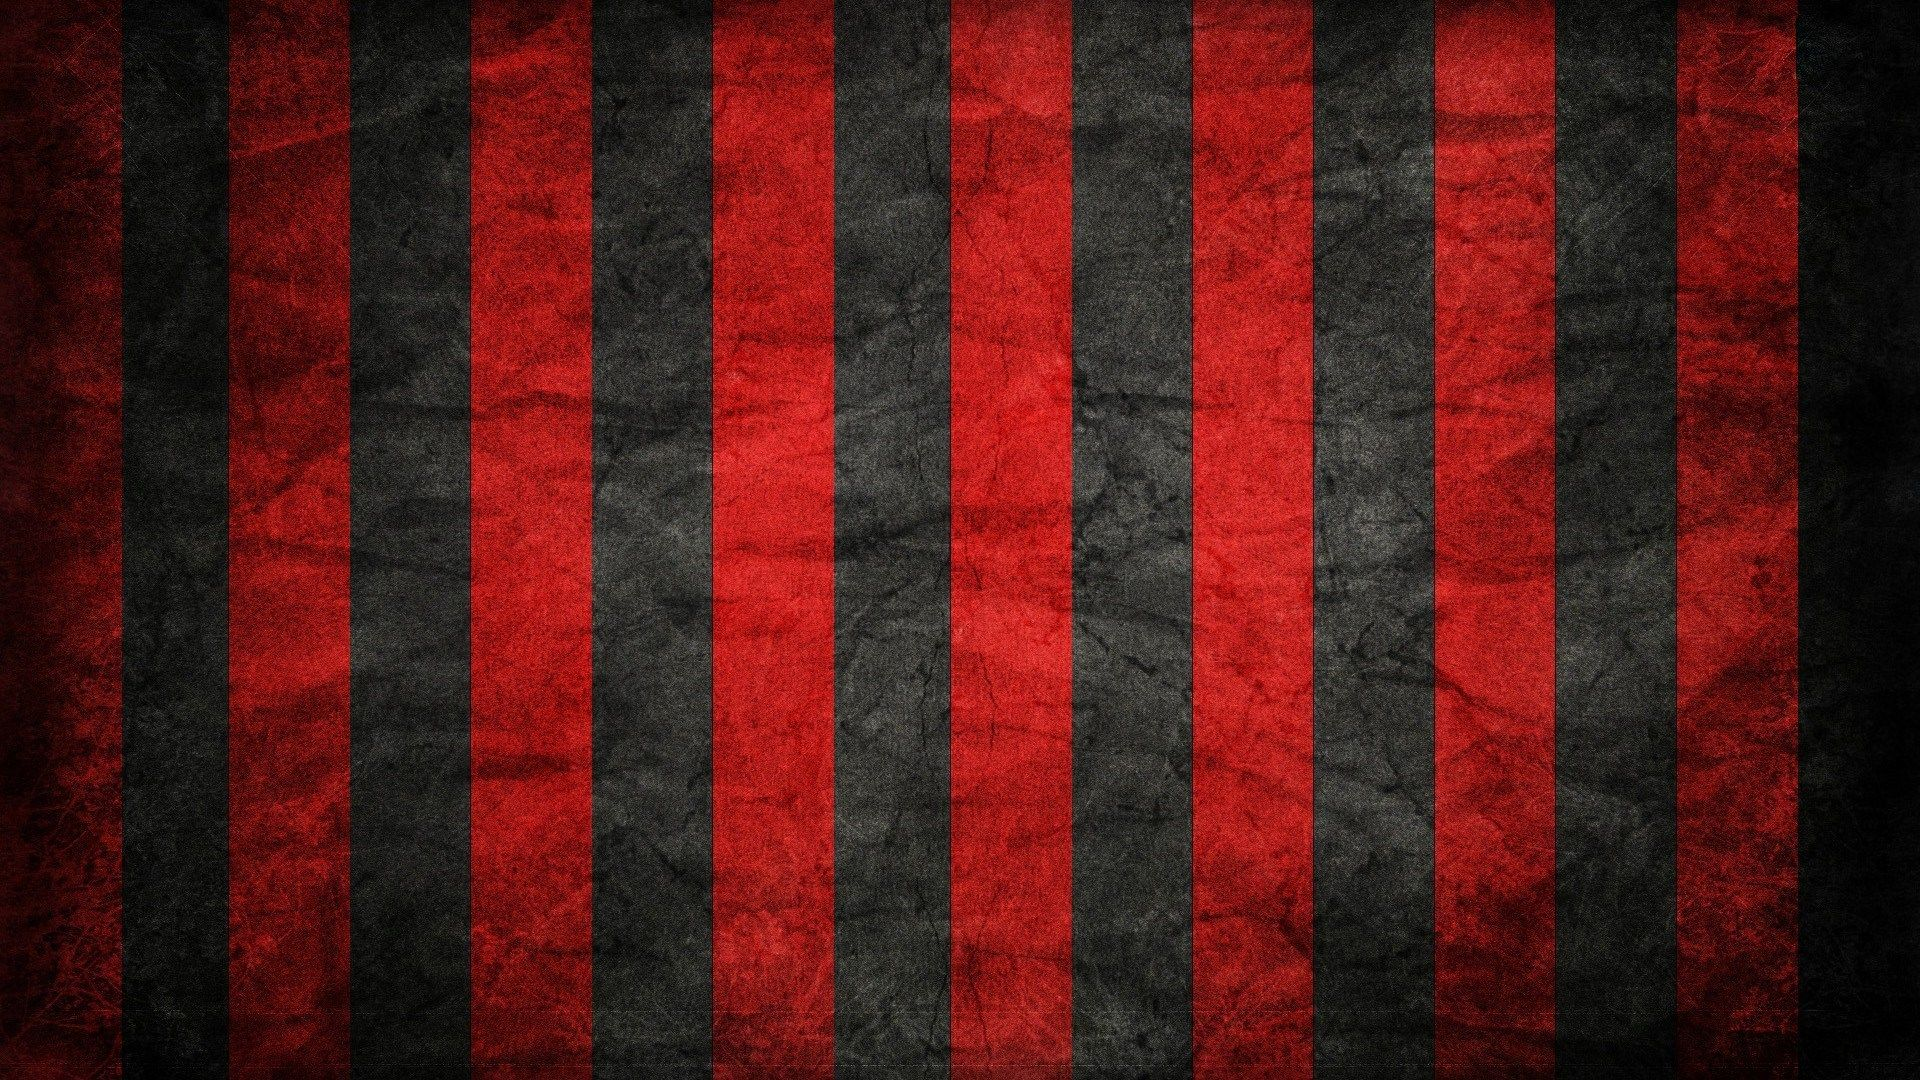 red black and silver wallpaper hd cool hd wallpaper